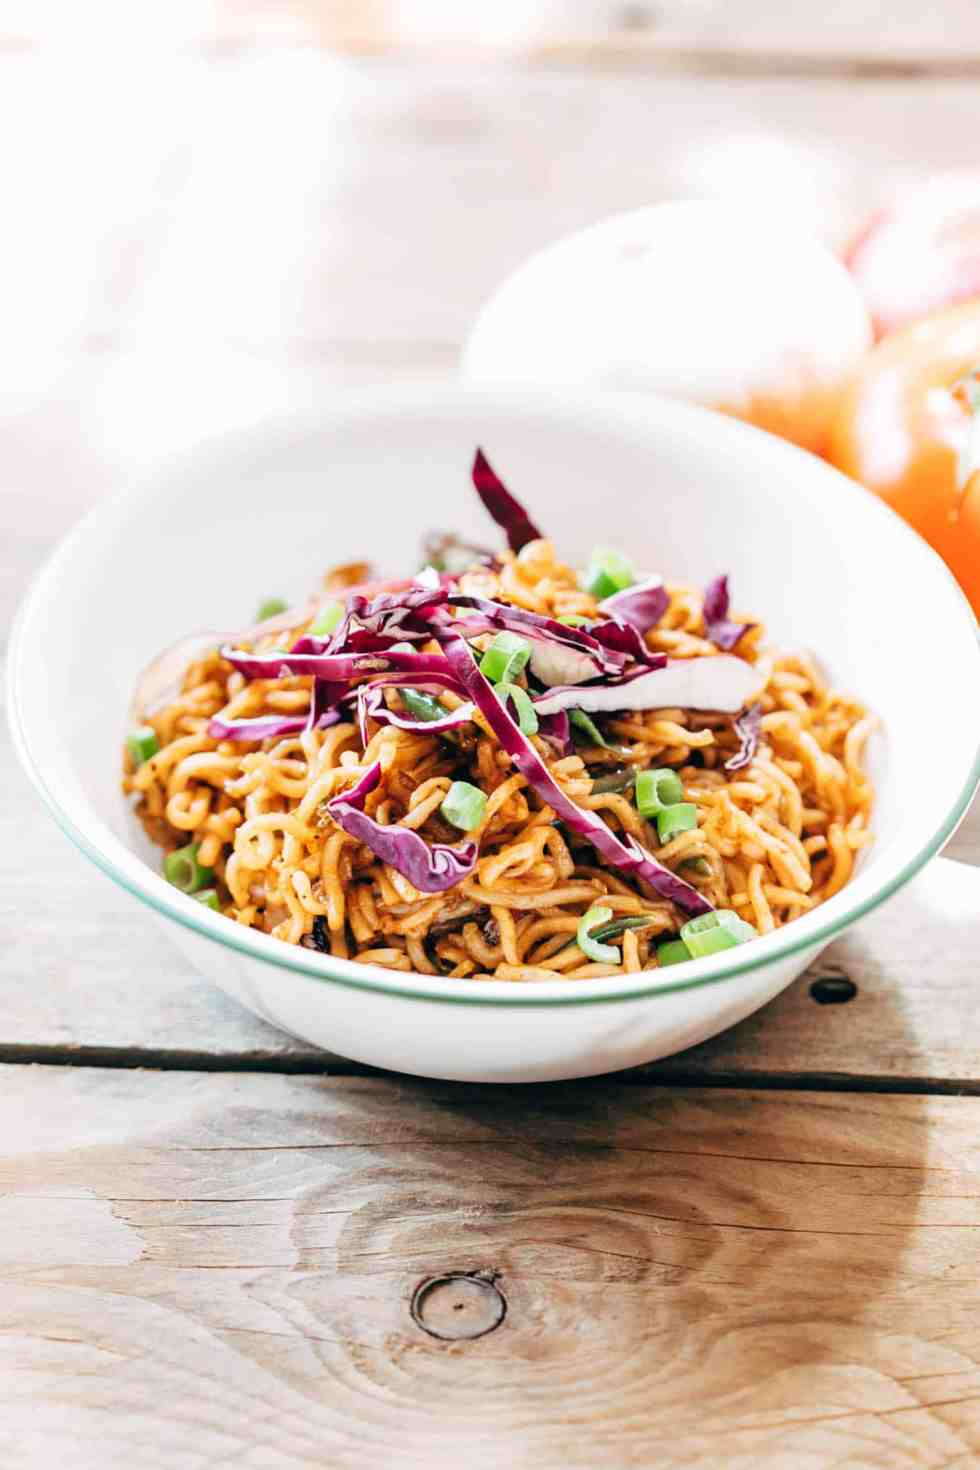 Chinese Maggi takes exactly 10 minutes to make and will remind of you of cheap street chinese noodles. Here are four amazing maggi recipes in one post that you must try - Italian Maggi, Cheese and Egg Maggi, Chinese Maggi and Spicy Masala Maggi for all your Maggi lovers!